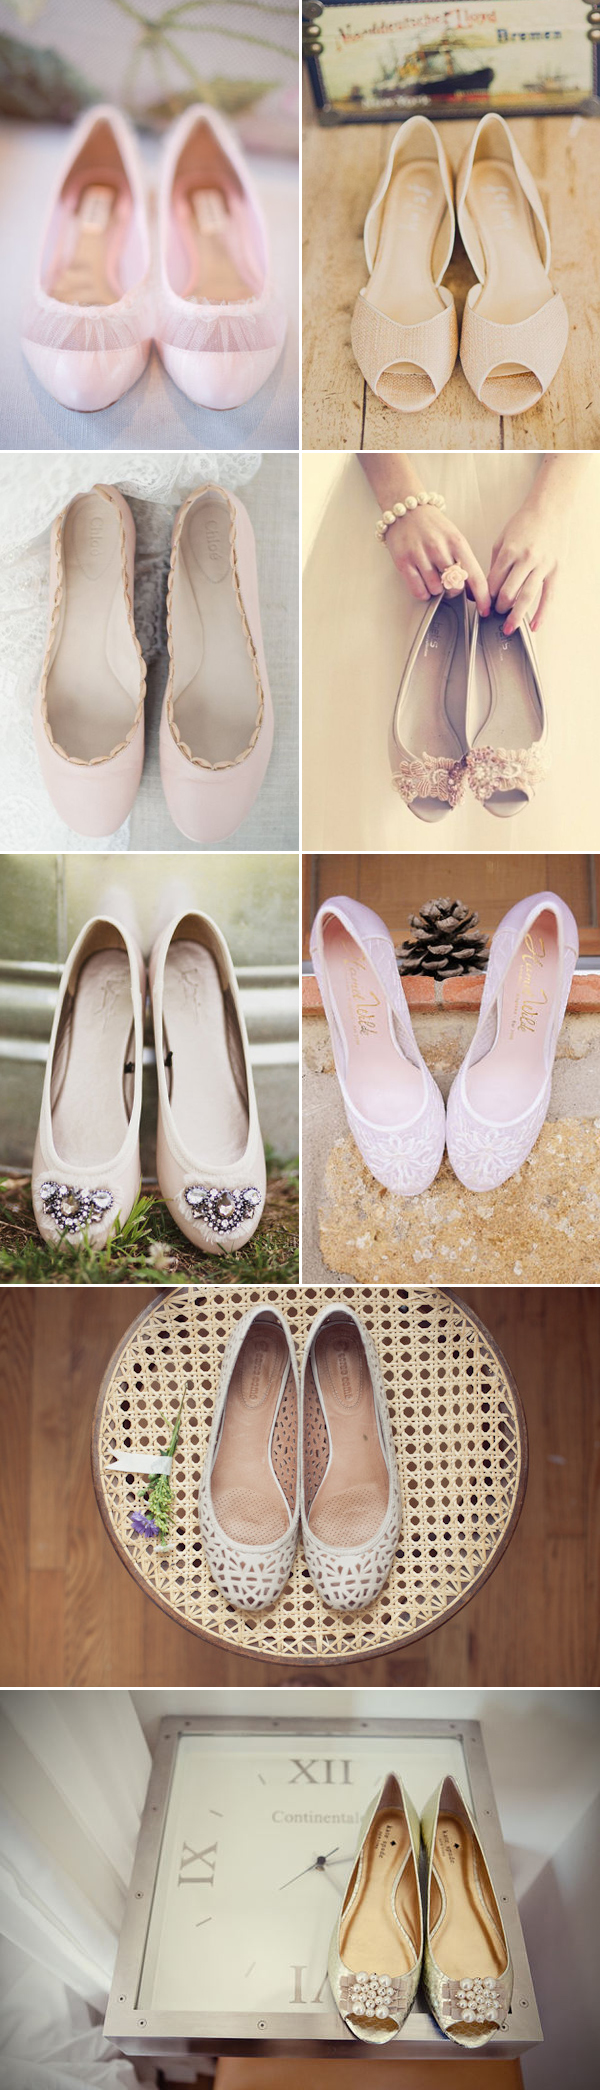 Wedding_Philippines_Most_Loved_Wedding_Shoes_for_Brides_Classic-elegance-flat-wedding-shoes